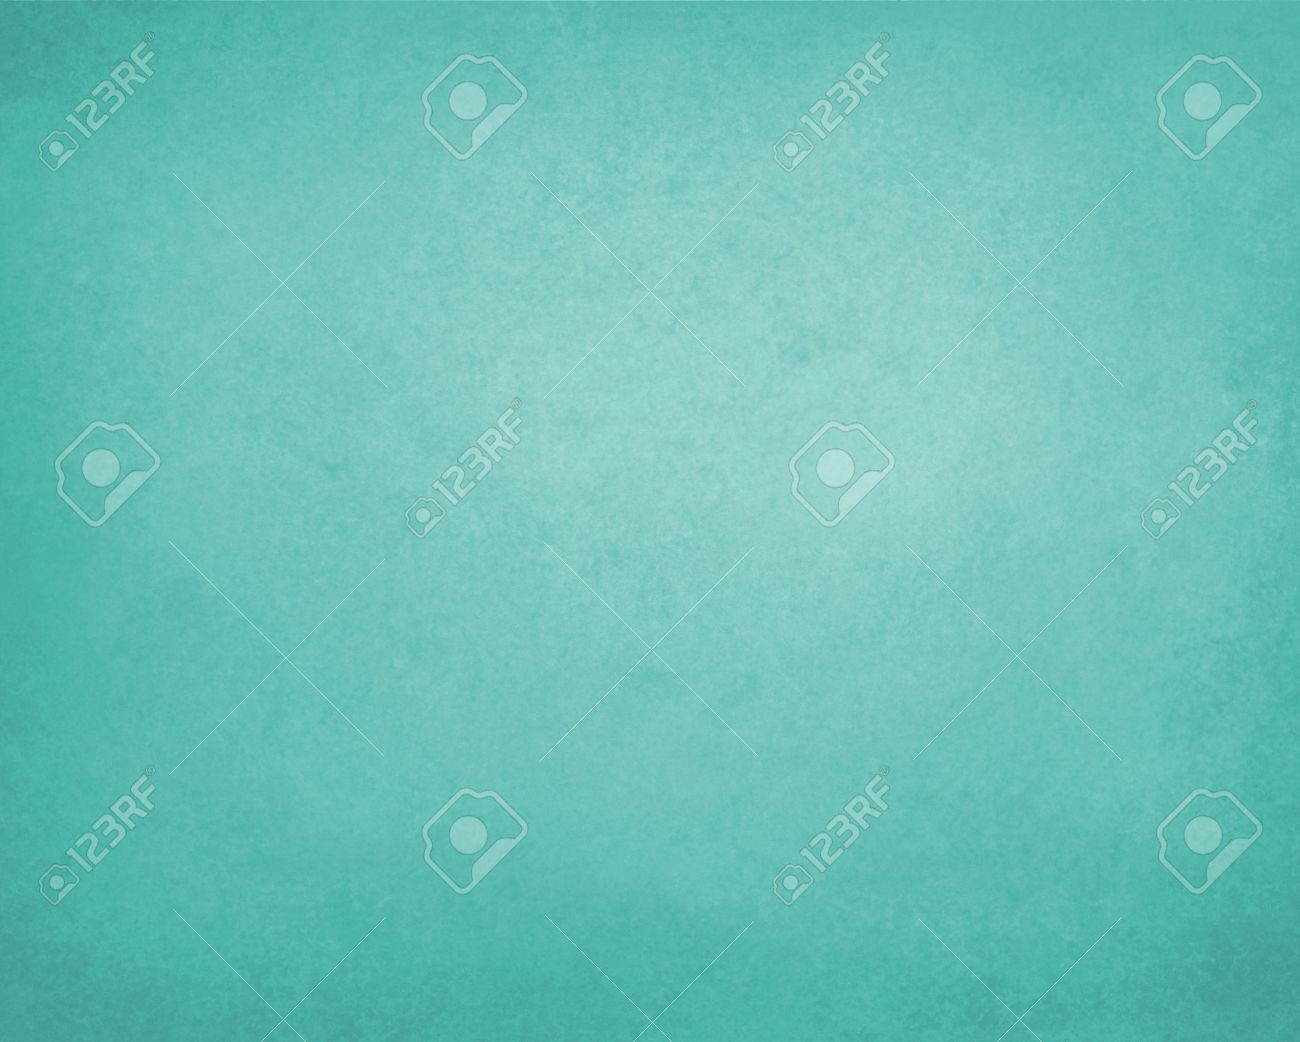 stock photo teal blue green background paper vintage texture and distressed soft pale blue green color